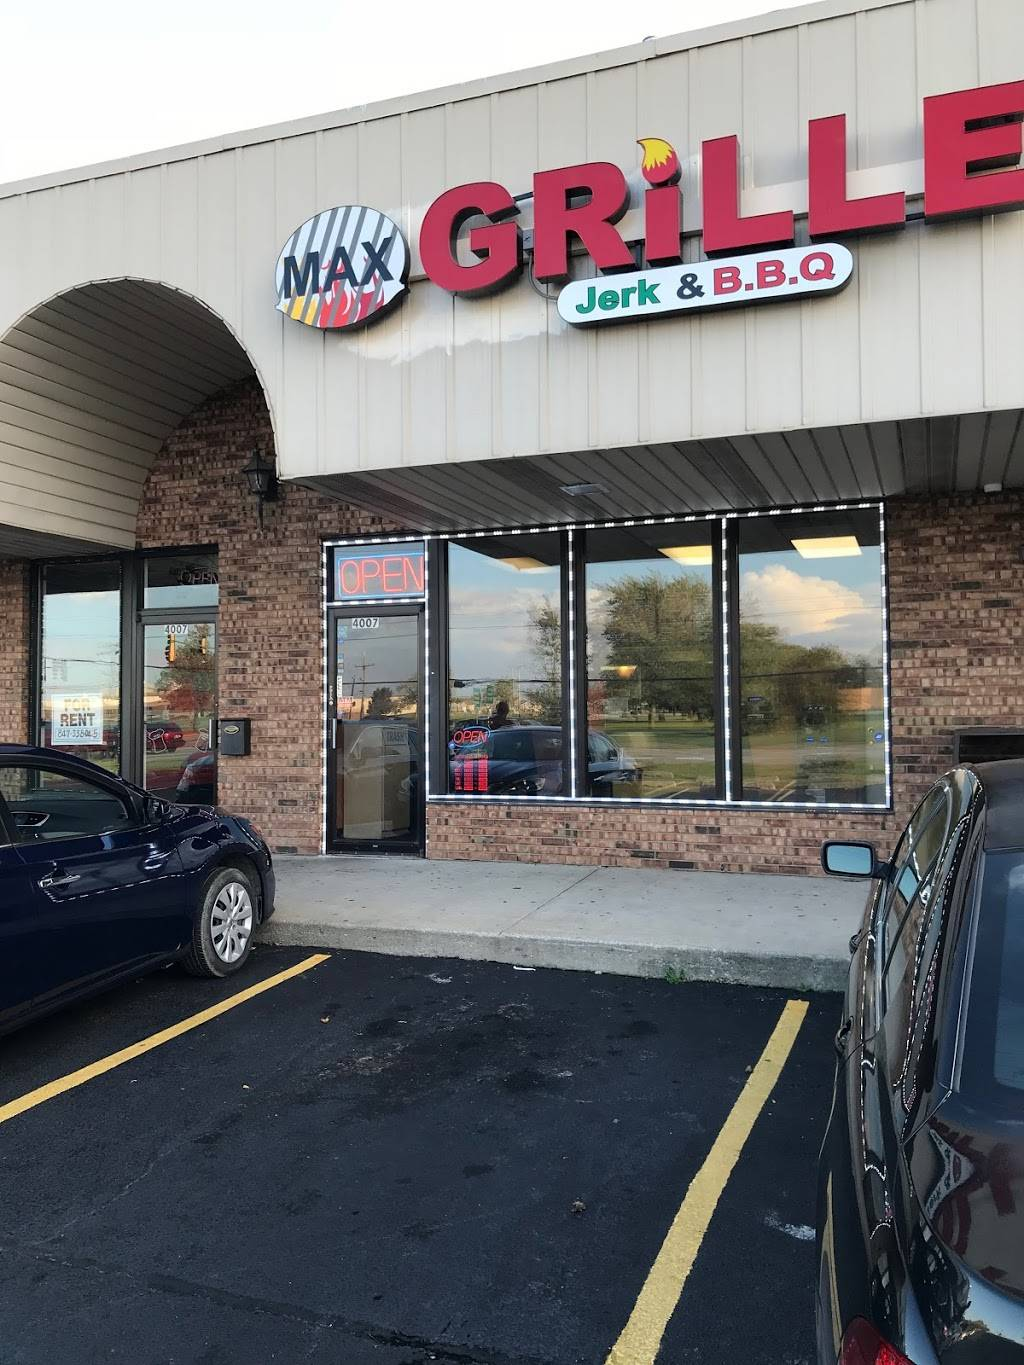 Max Grille Seafood & Chicken | restaurant | 4007 175th St, Country Club Hills, IL 60478, USA | 7089229002 OR +1 708-922-9002